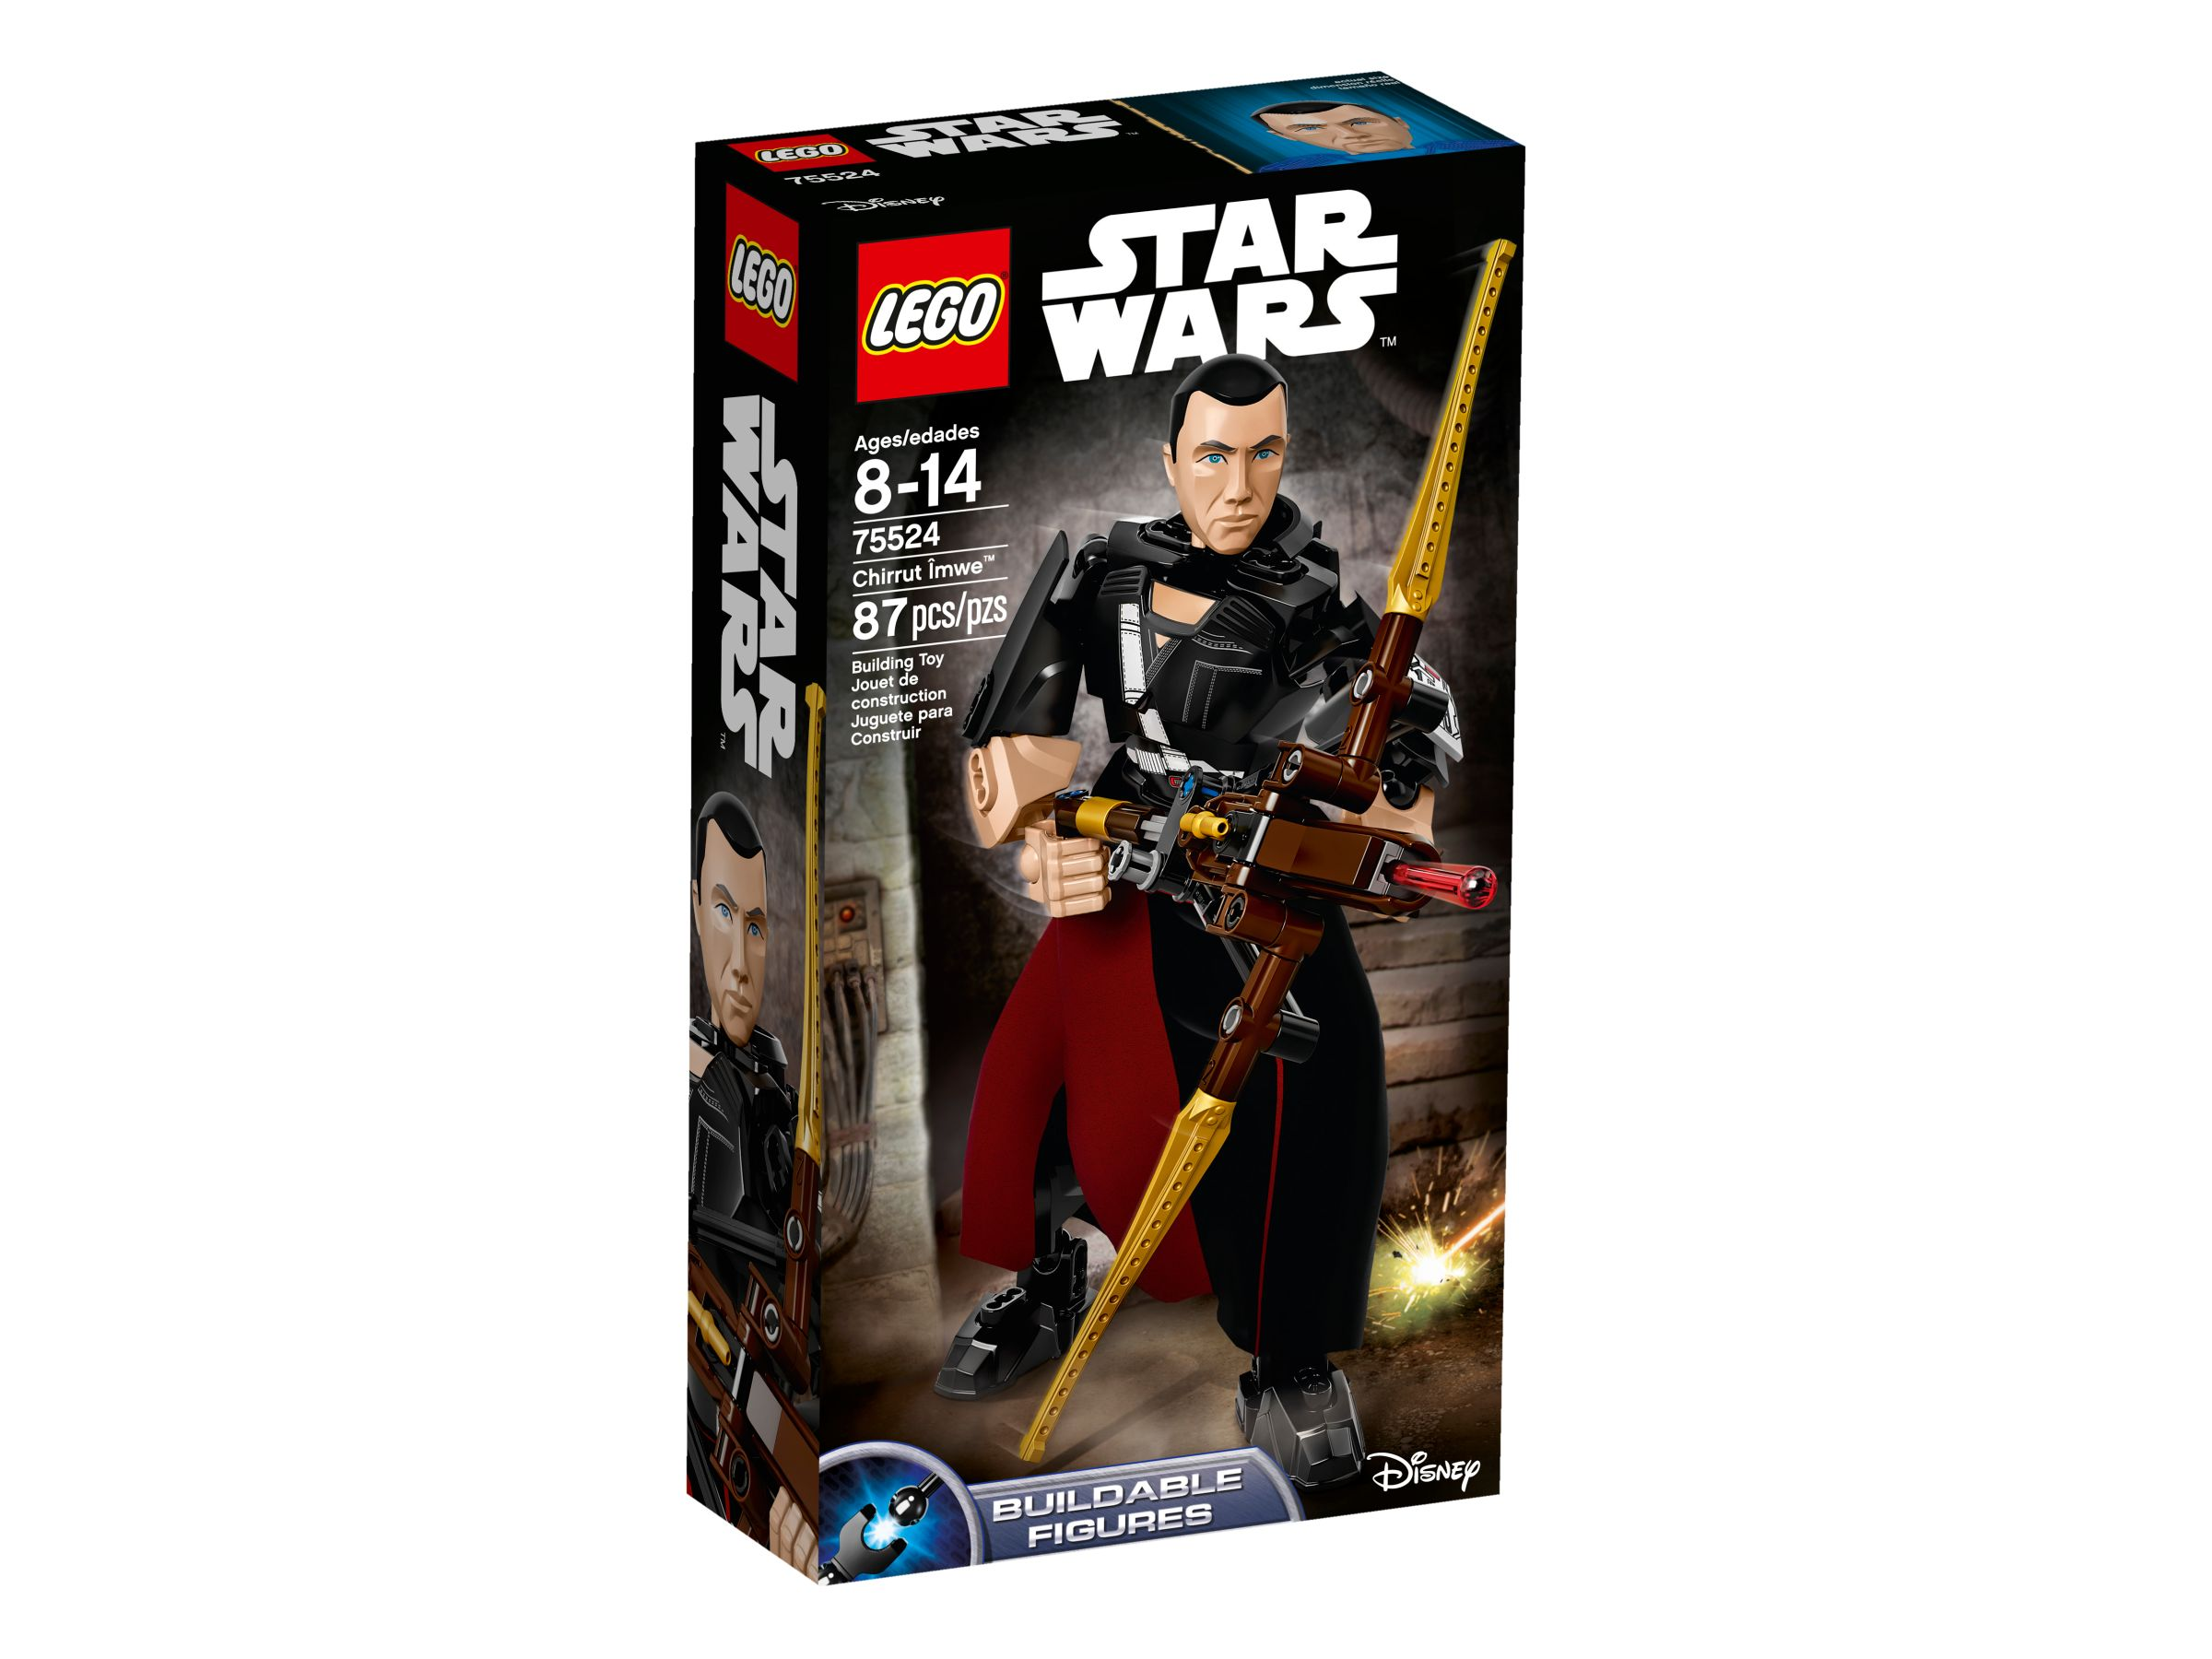 LEGO Star Wars Buildable Figures 75524 Chirrut Îmwe™ LEGO_75524_alt1.jpg